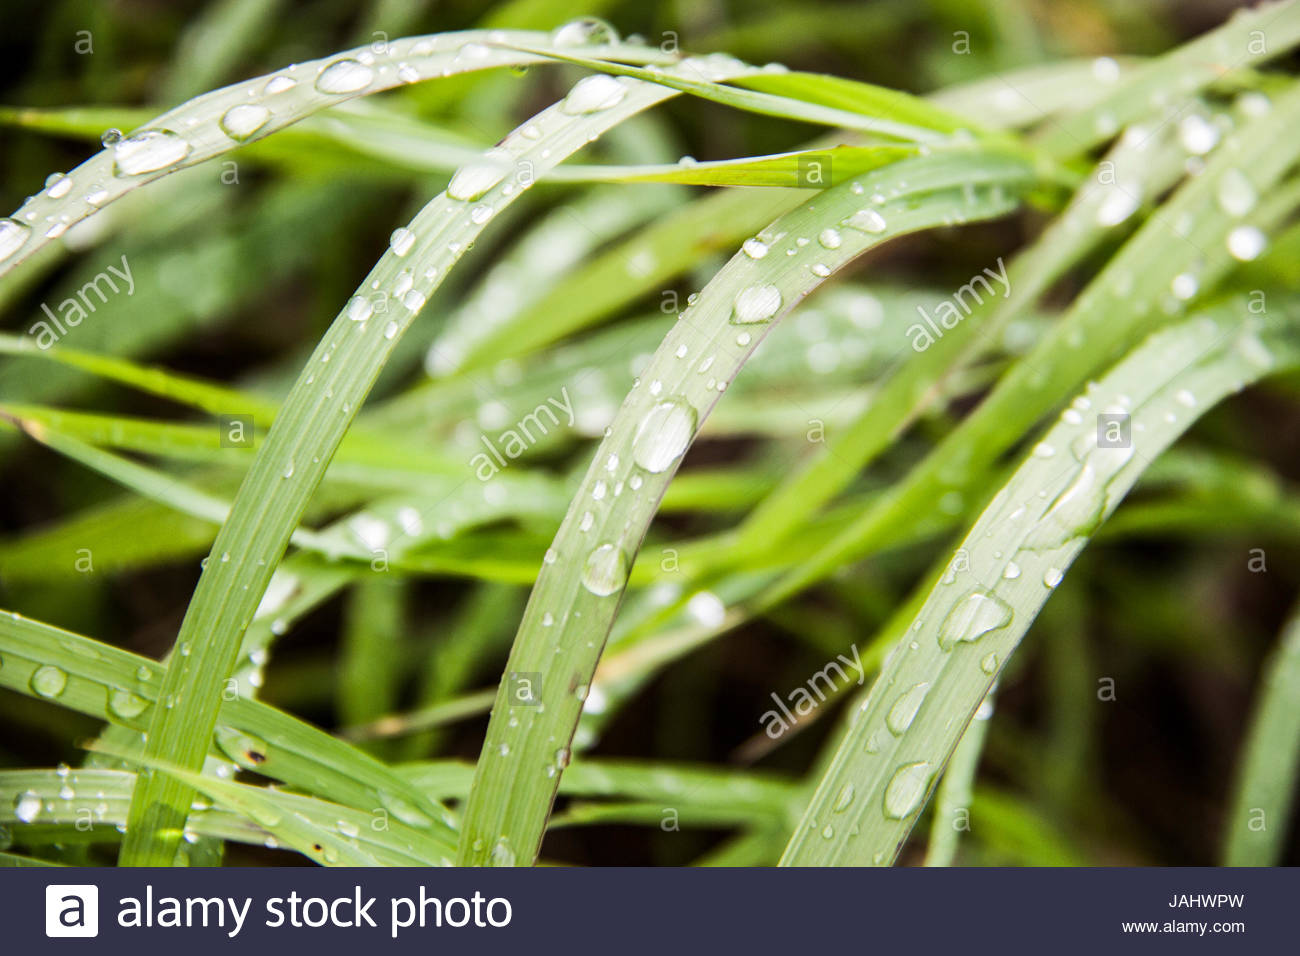 Wet blades of grass. - Stock Image